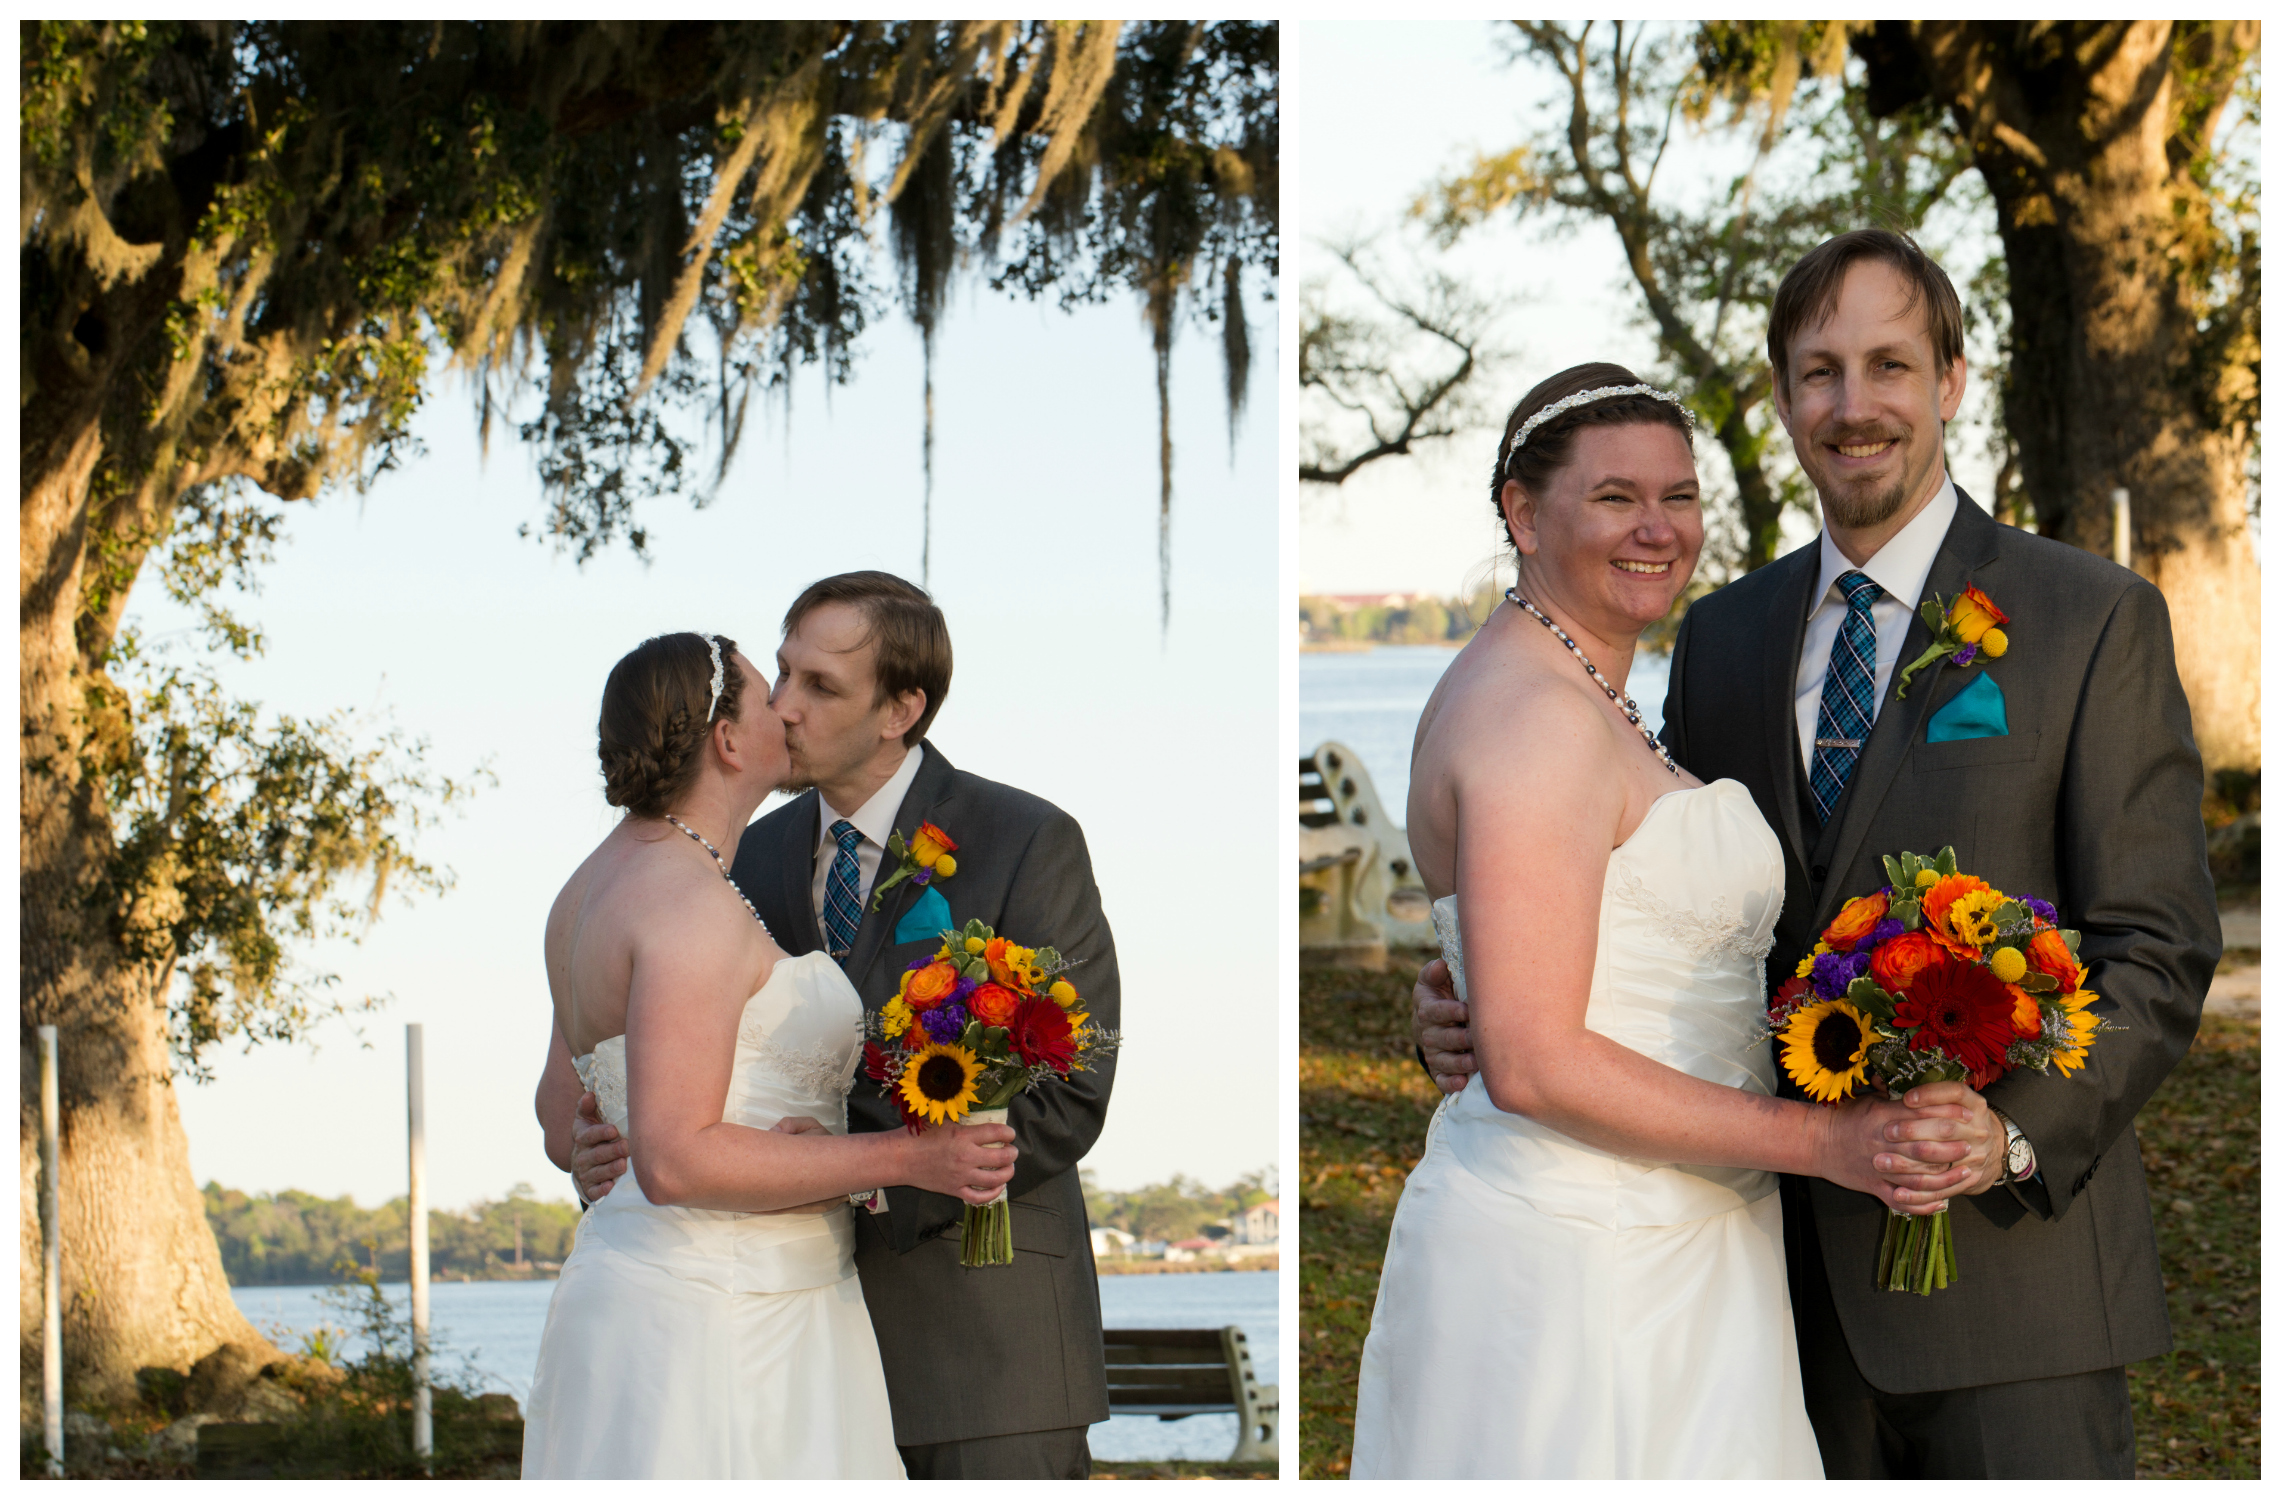 wedding portraits with live oak tree and colorful bouquet